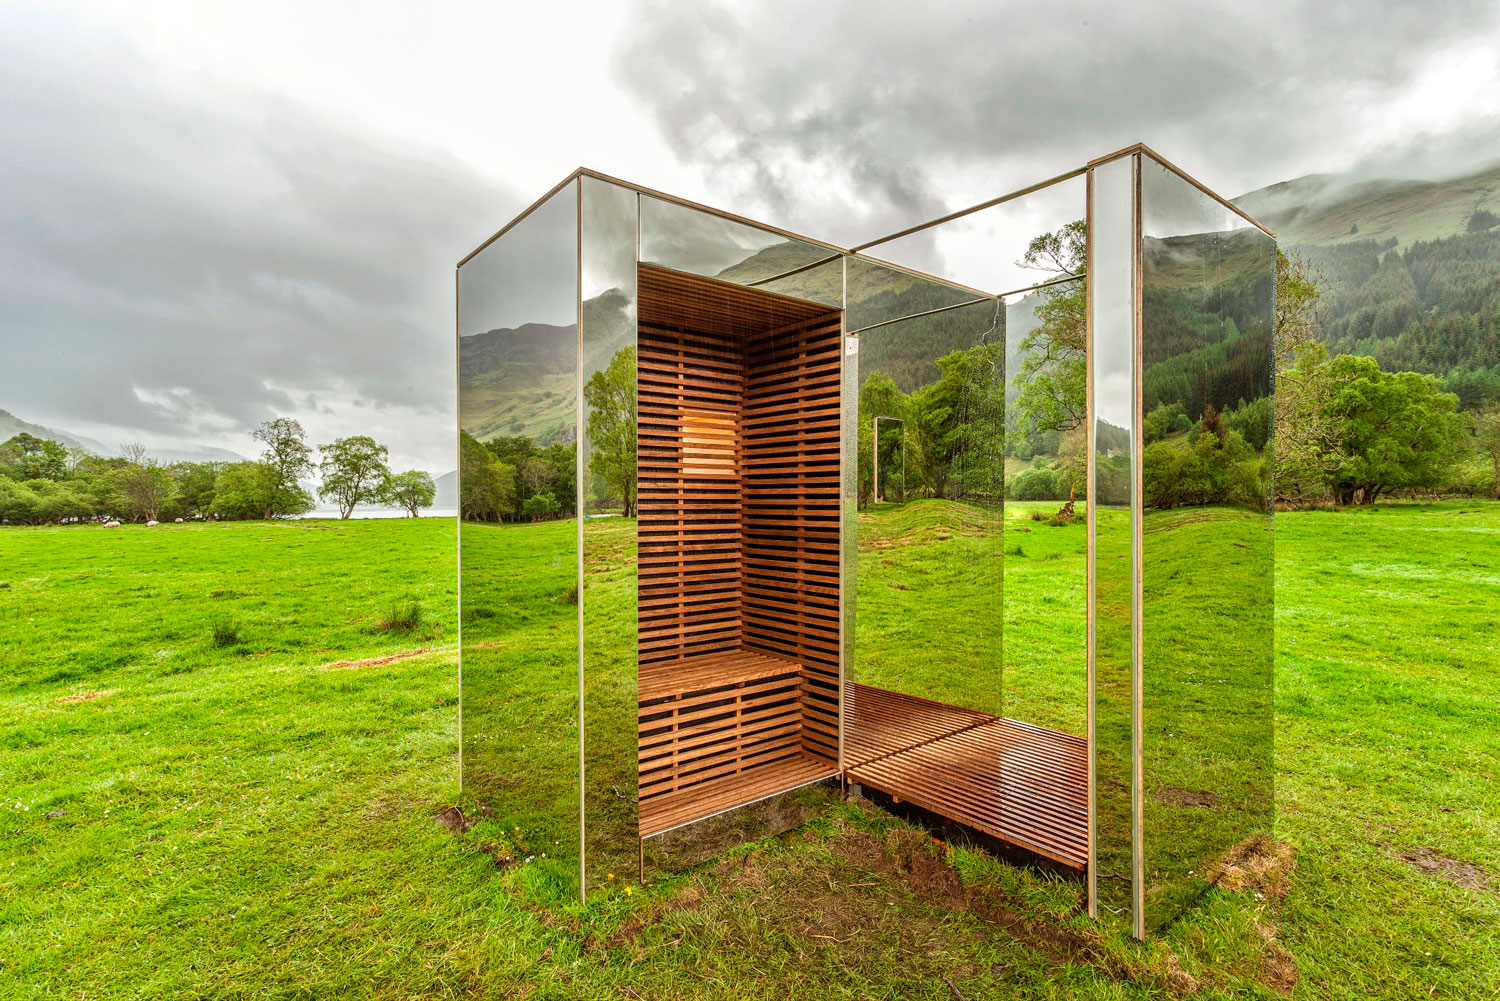 Mirrored Cabin in Scottish Glen by Angus Ritchie & Daniel Tyler | Yellowtrace